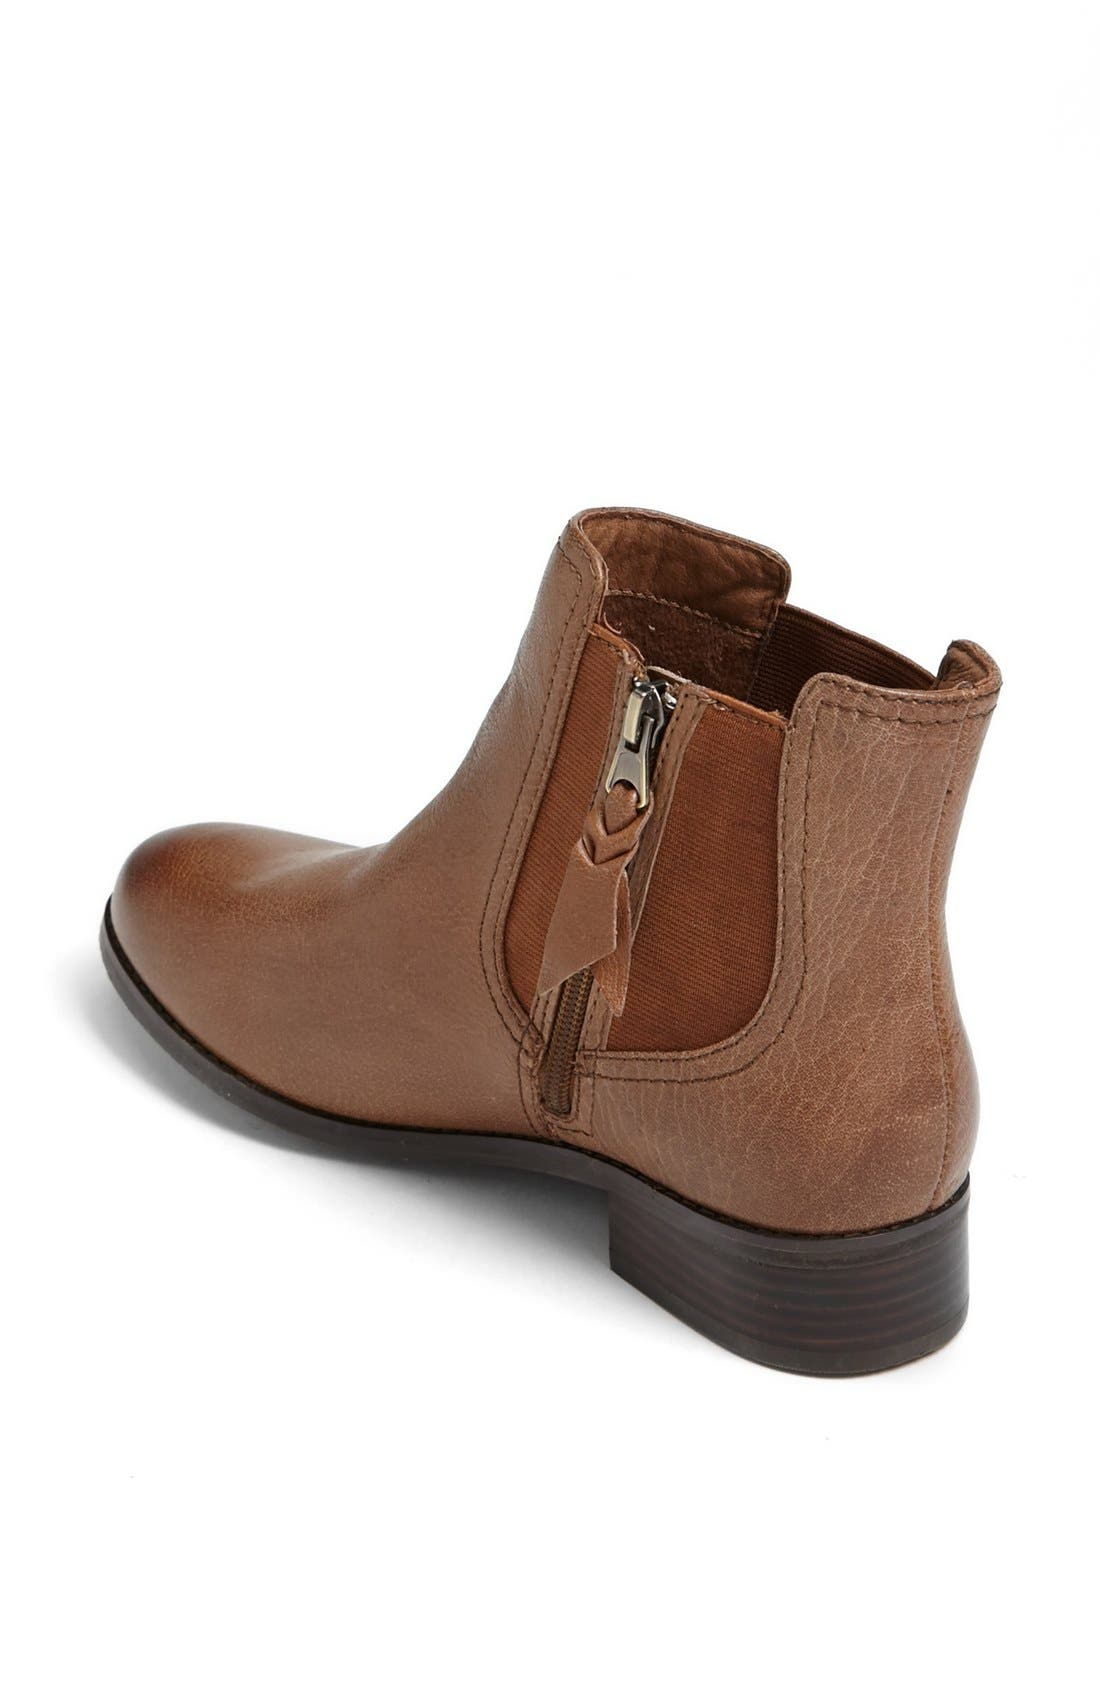 Alternate Image 2  - Trotters 'Leah' Boot